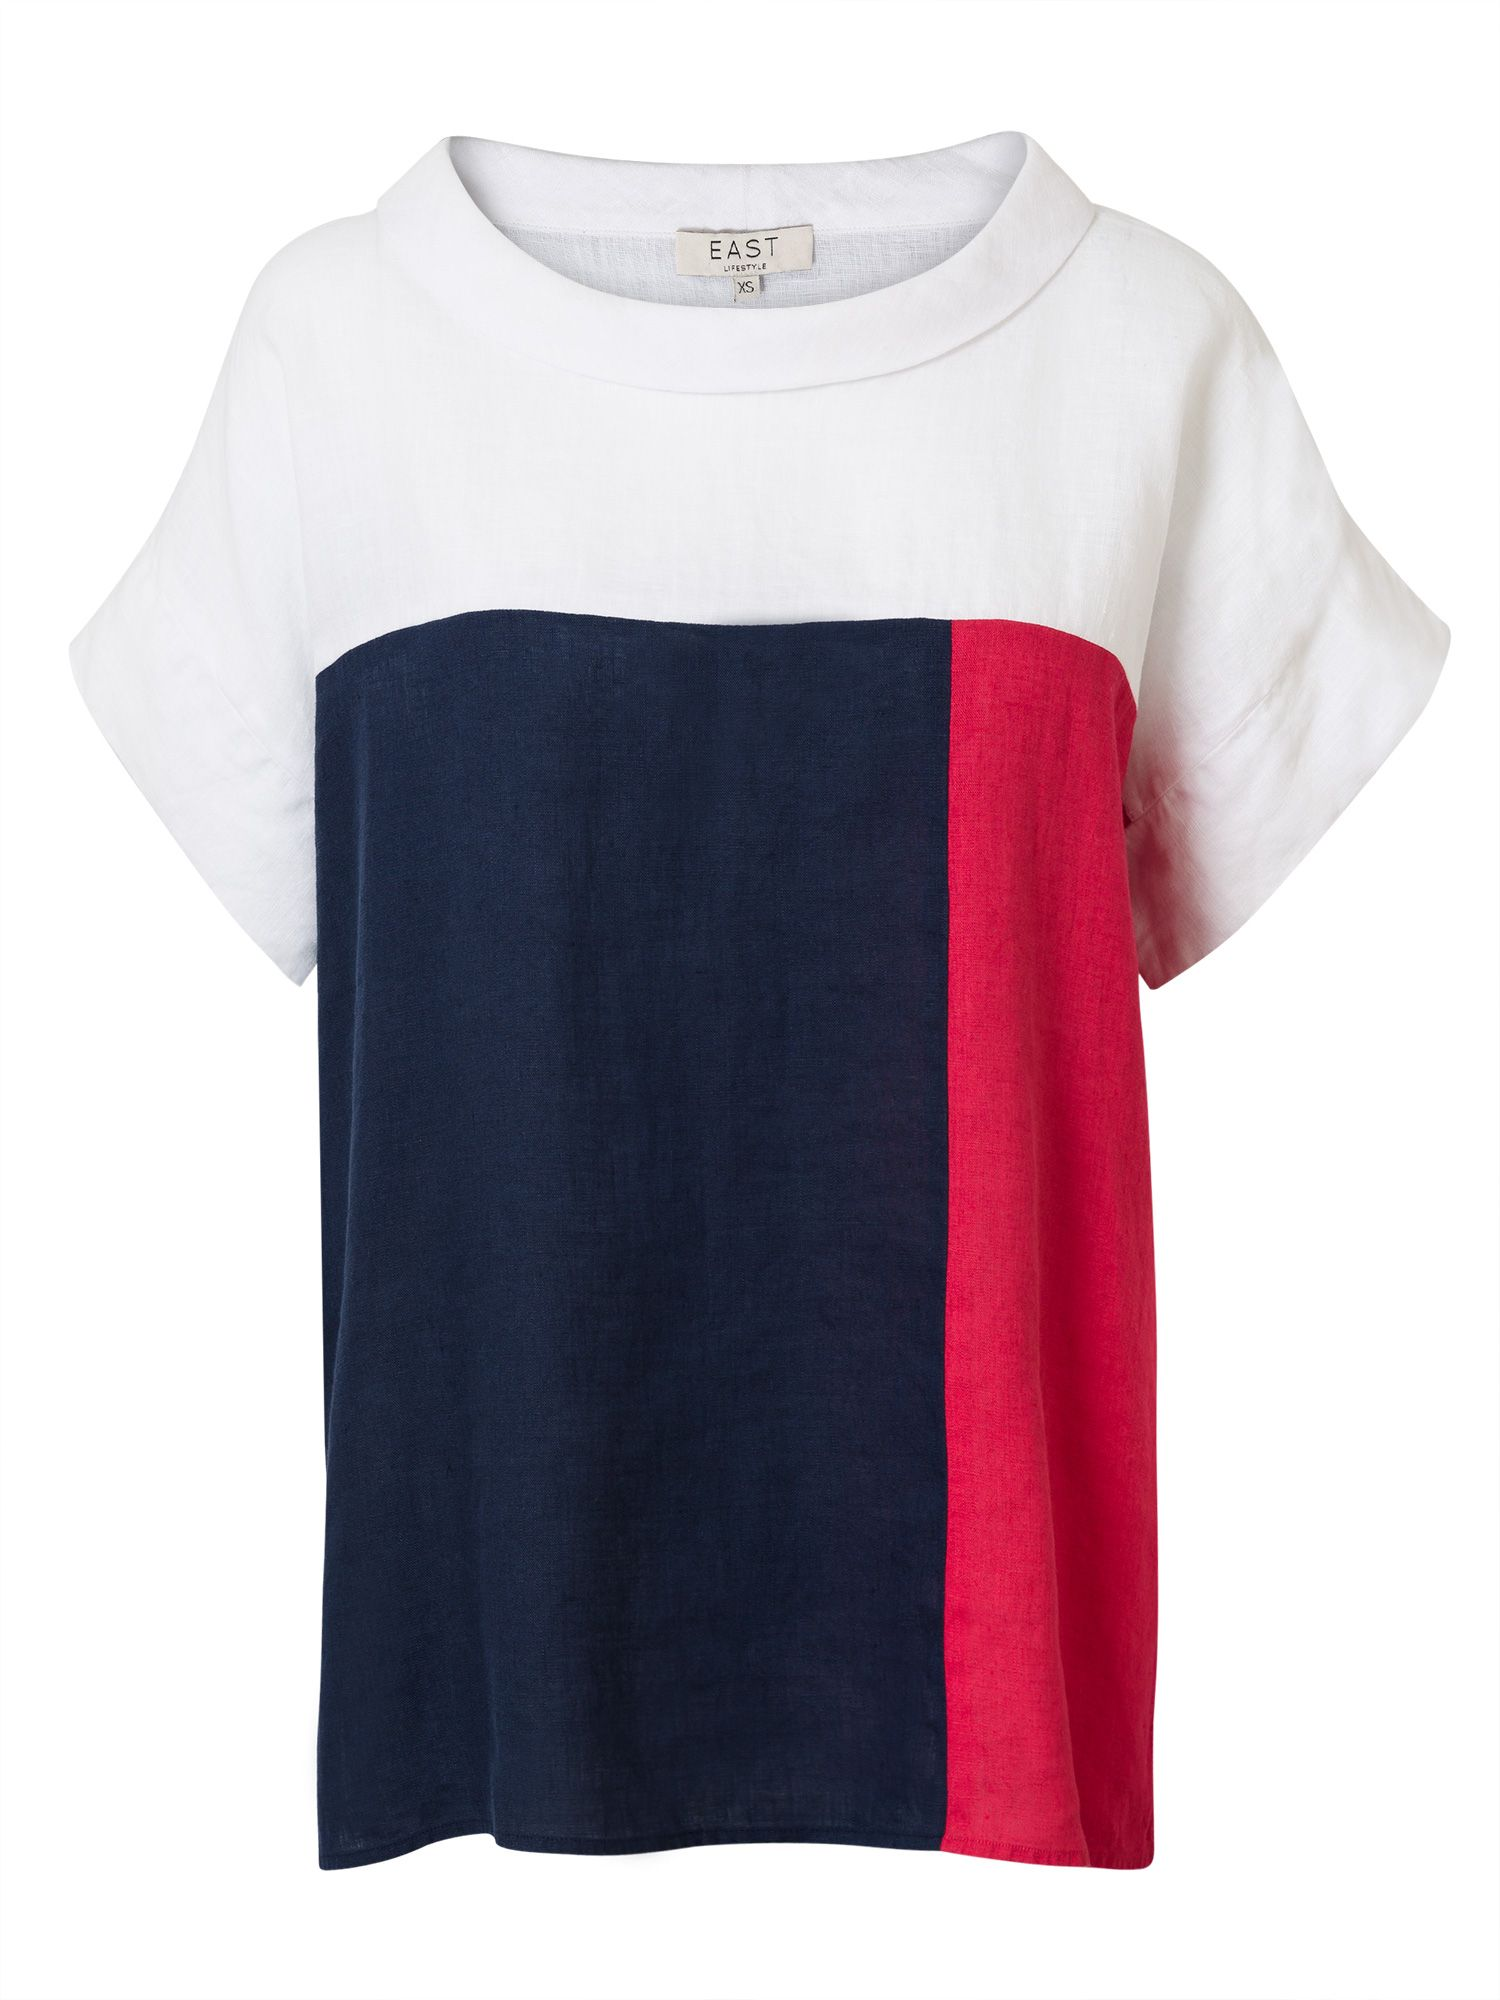 East Colourblock Bardot Top, Red